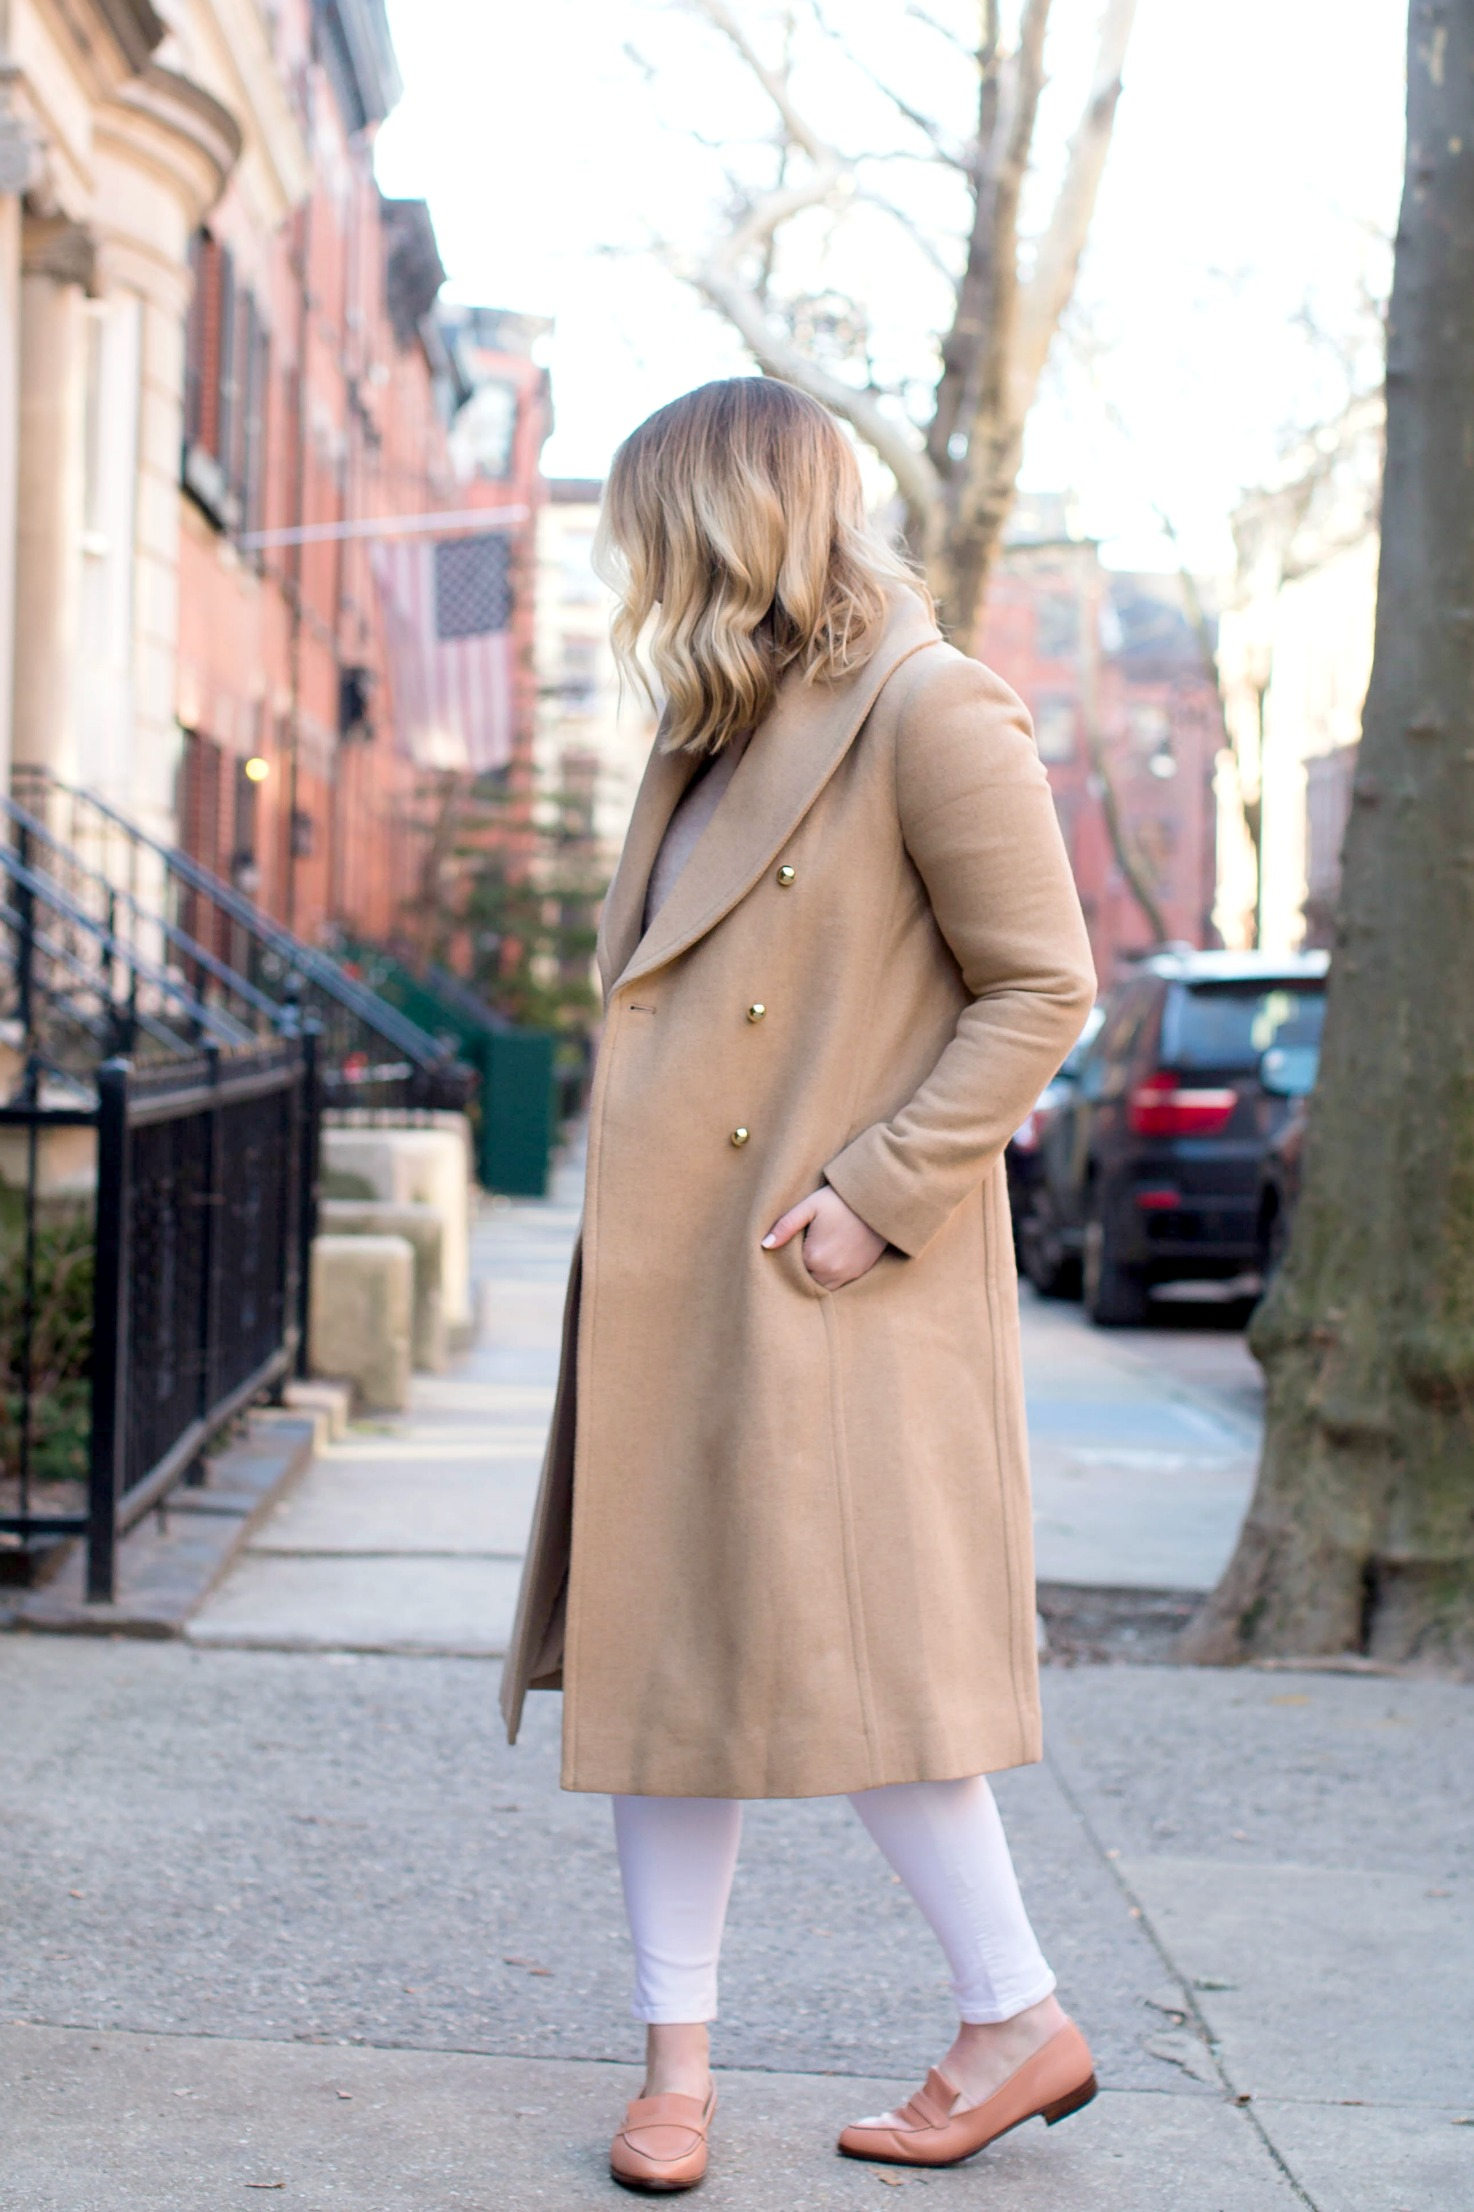 Styling a camel coat with white jeans I seen on Meghan Donovan of wit & whimsy